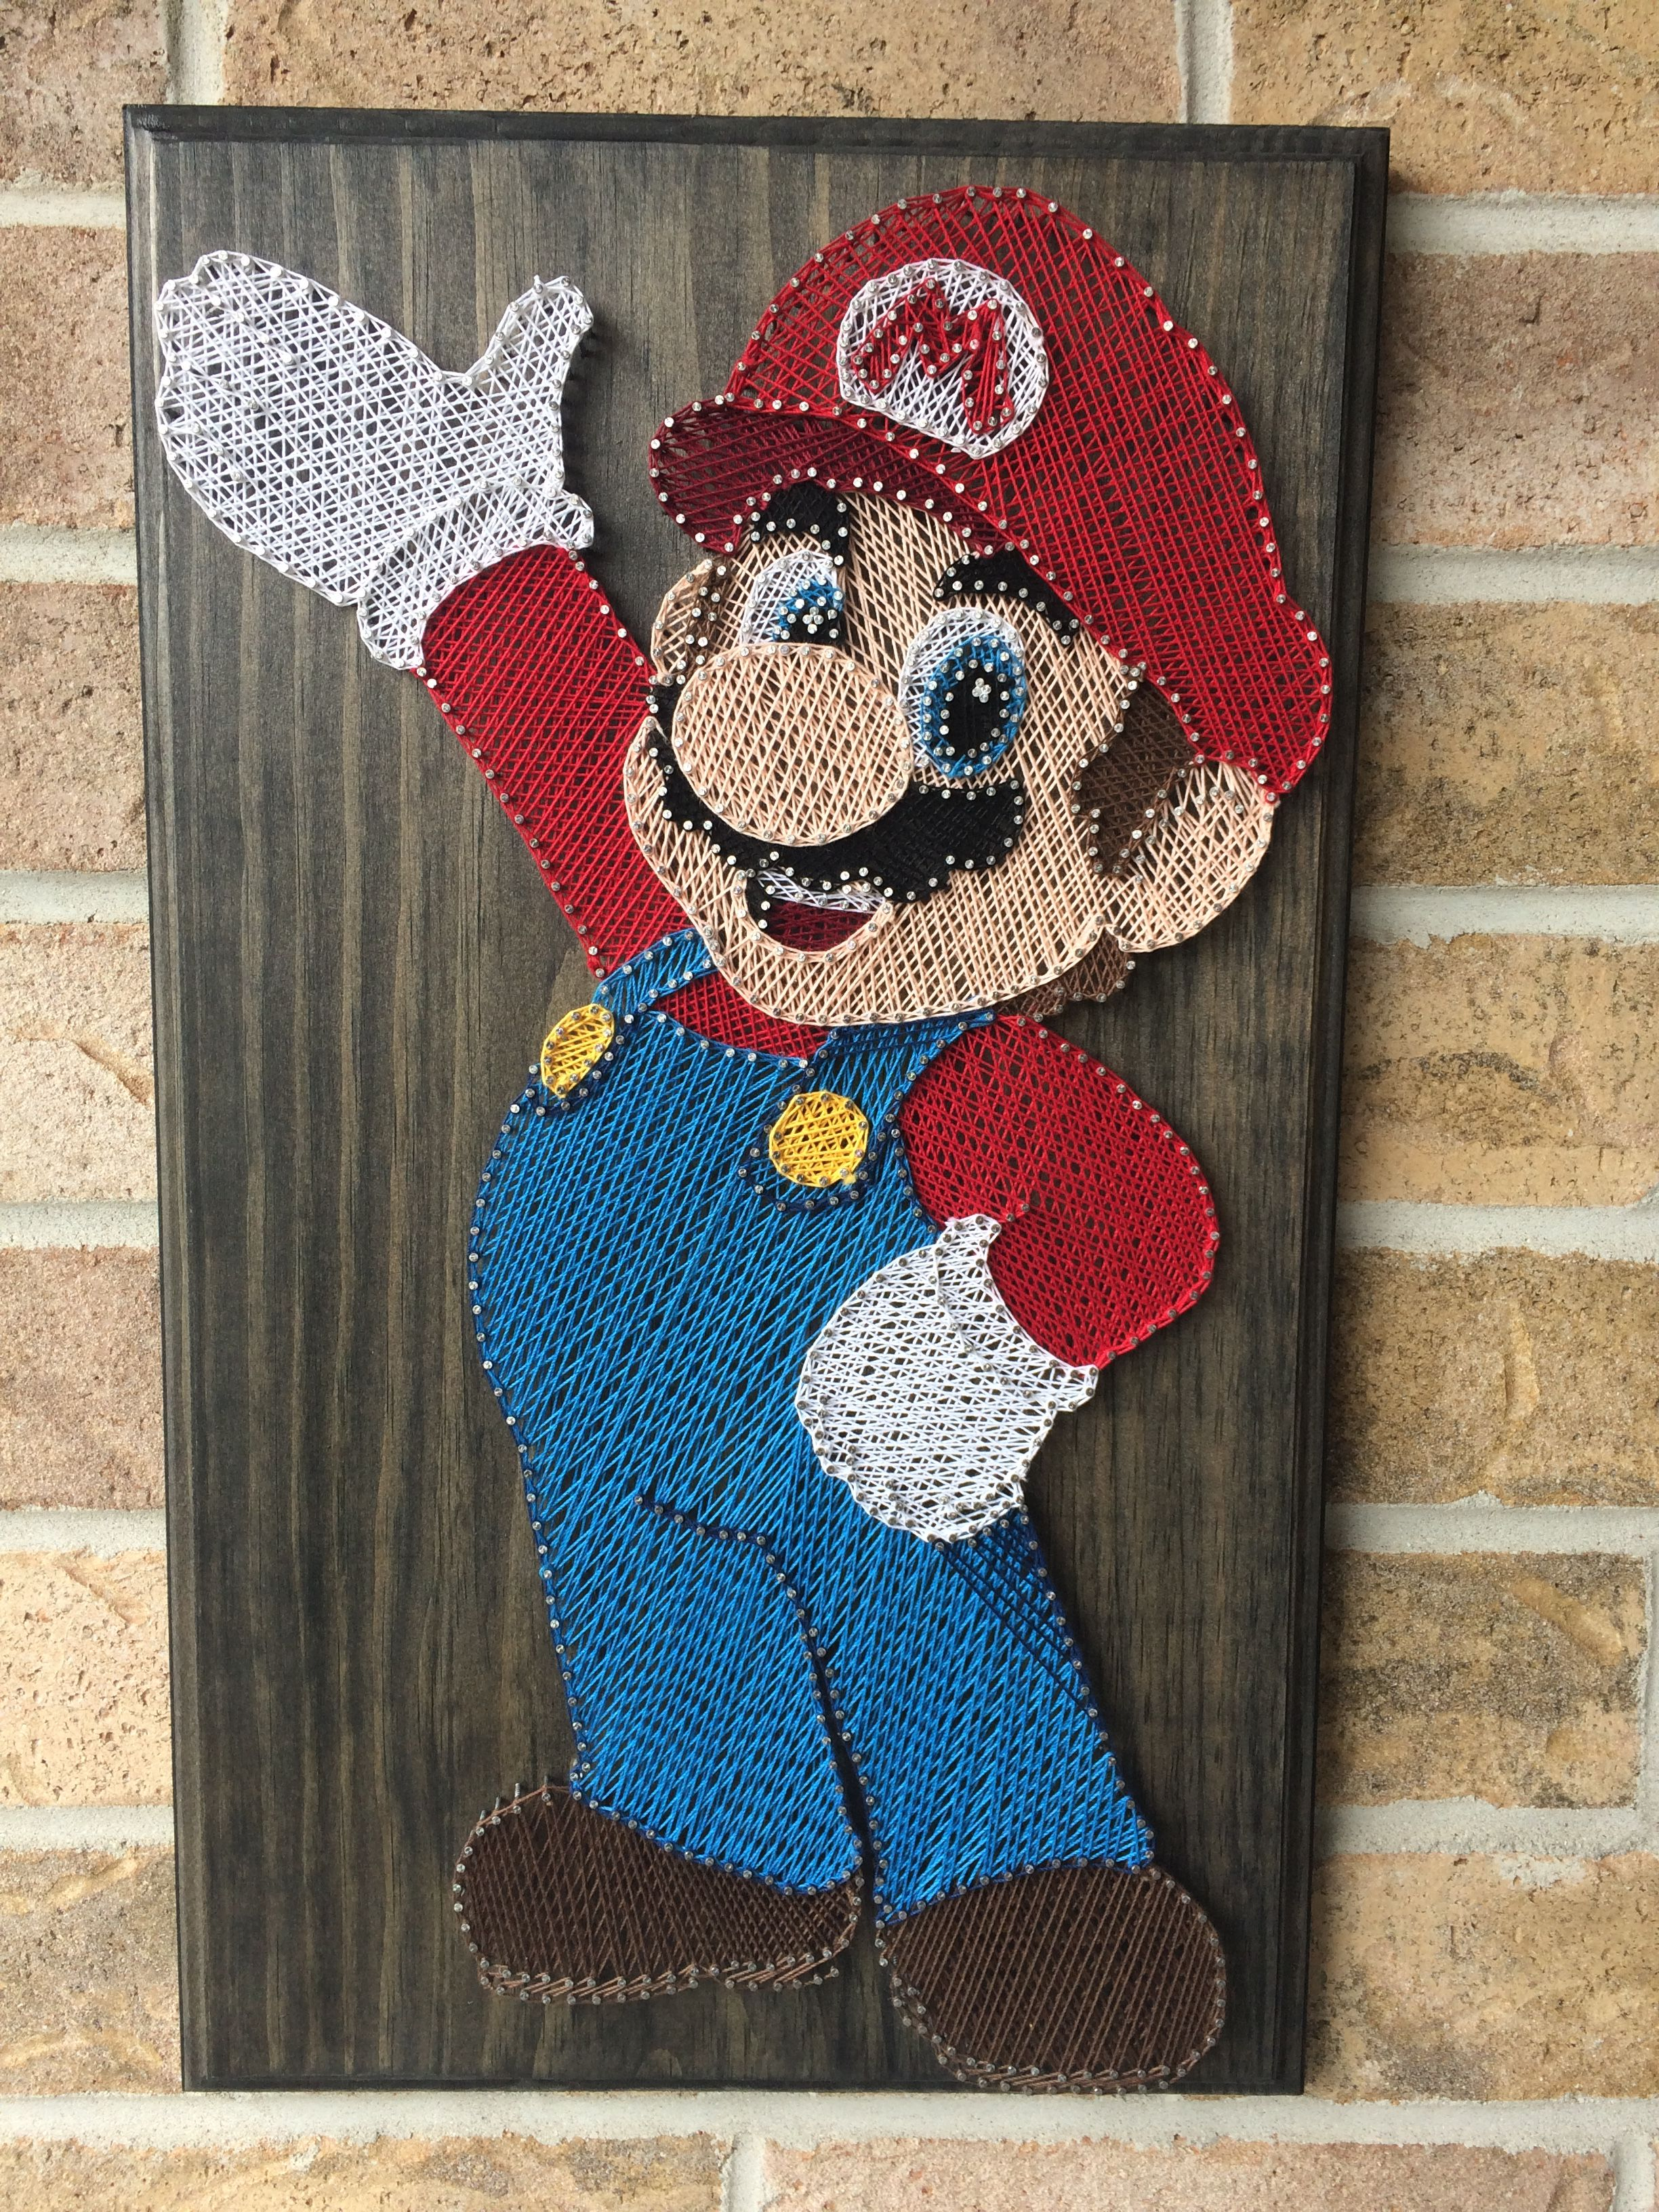 My Full Body String Art Image Of Mario Made This